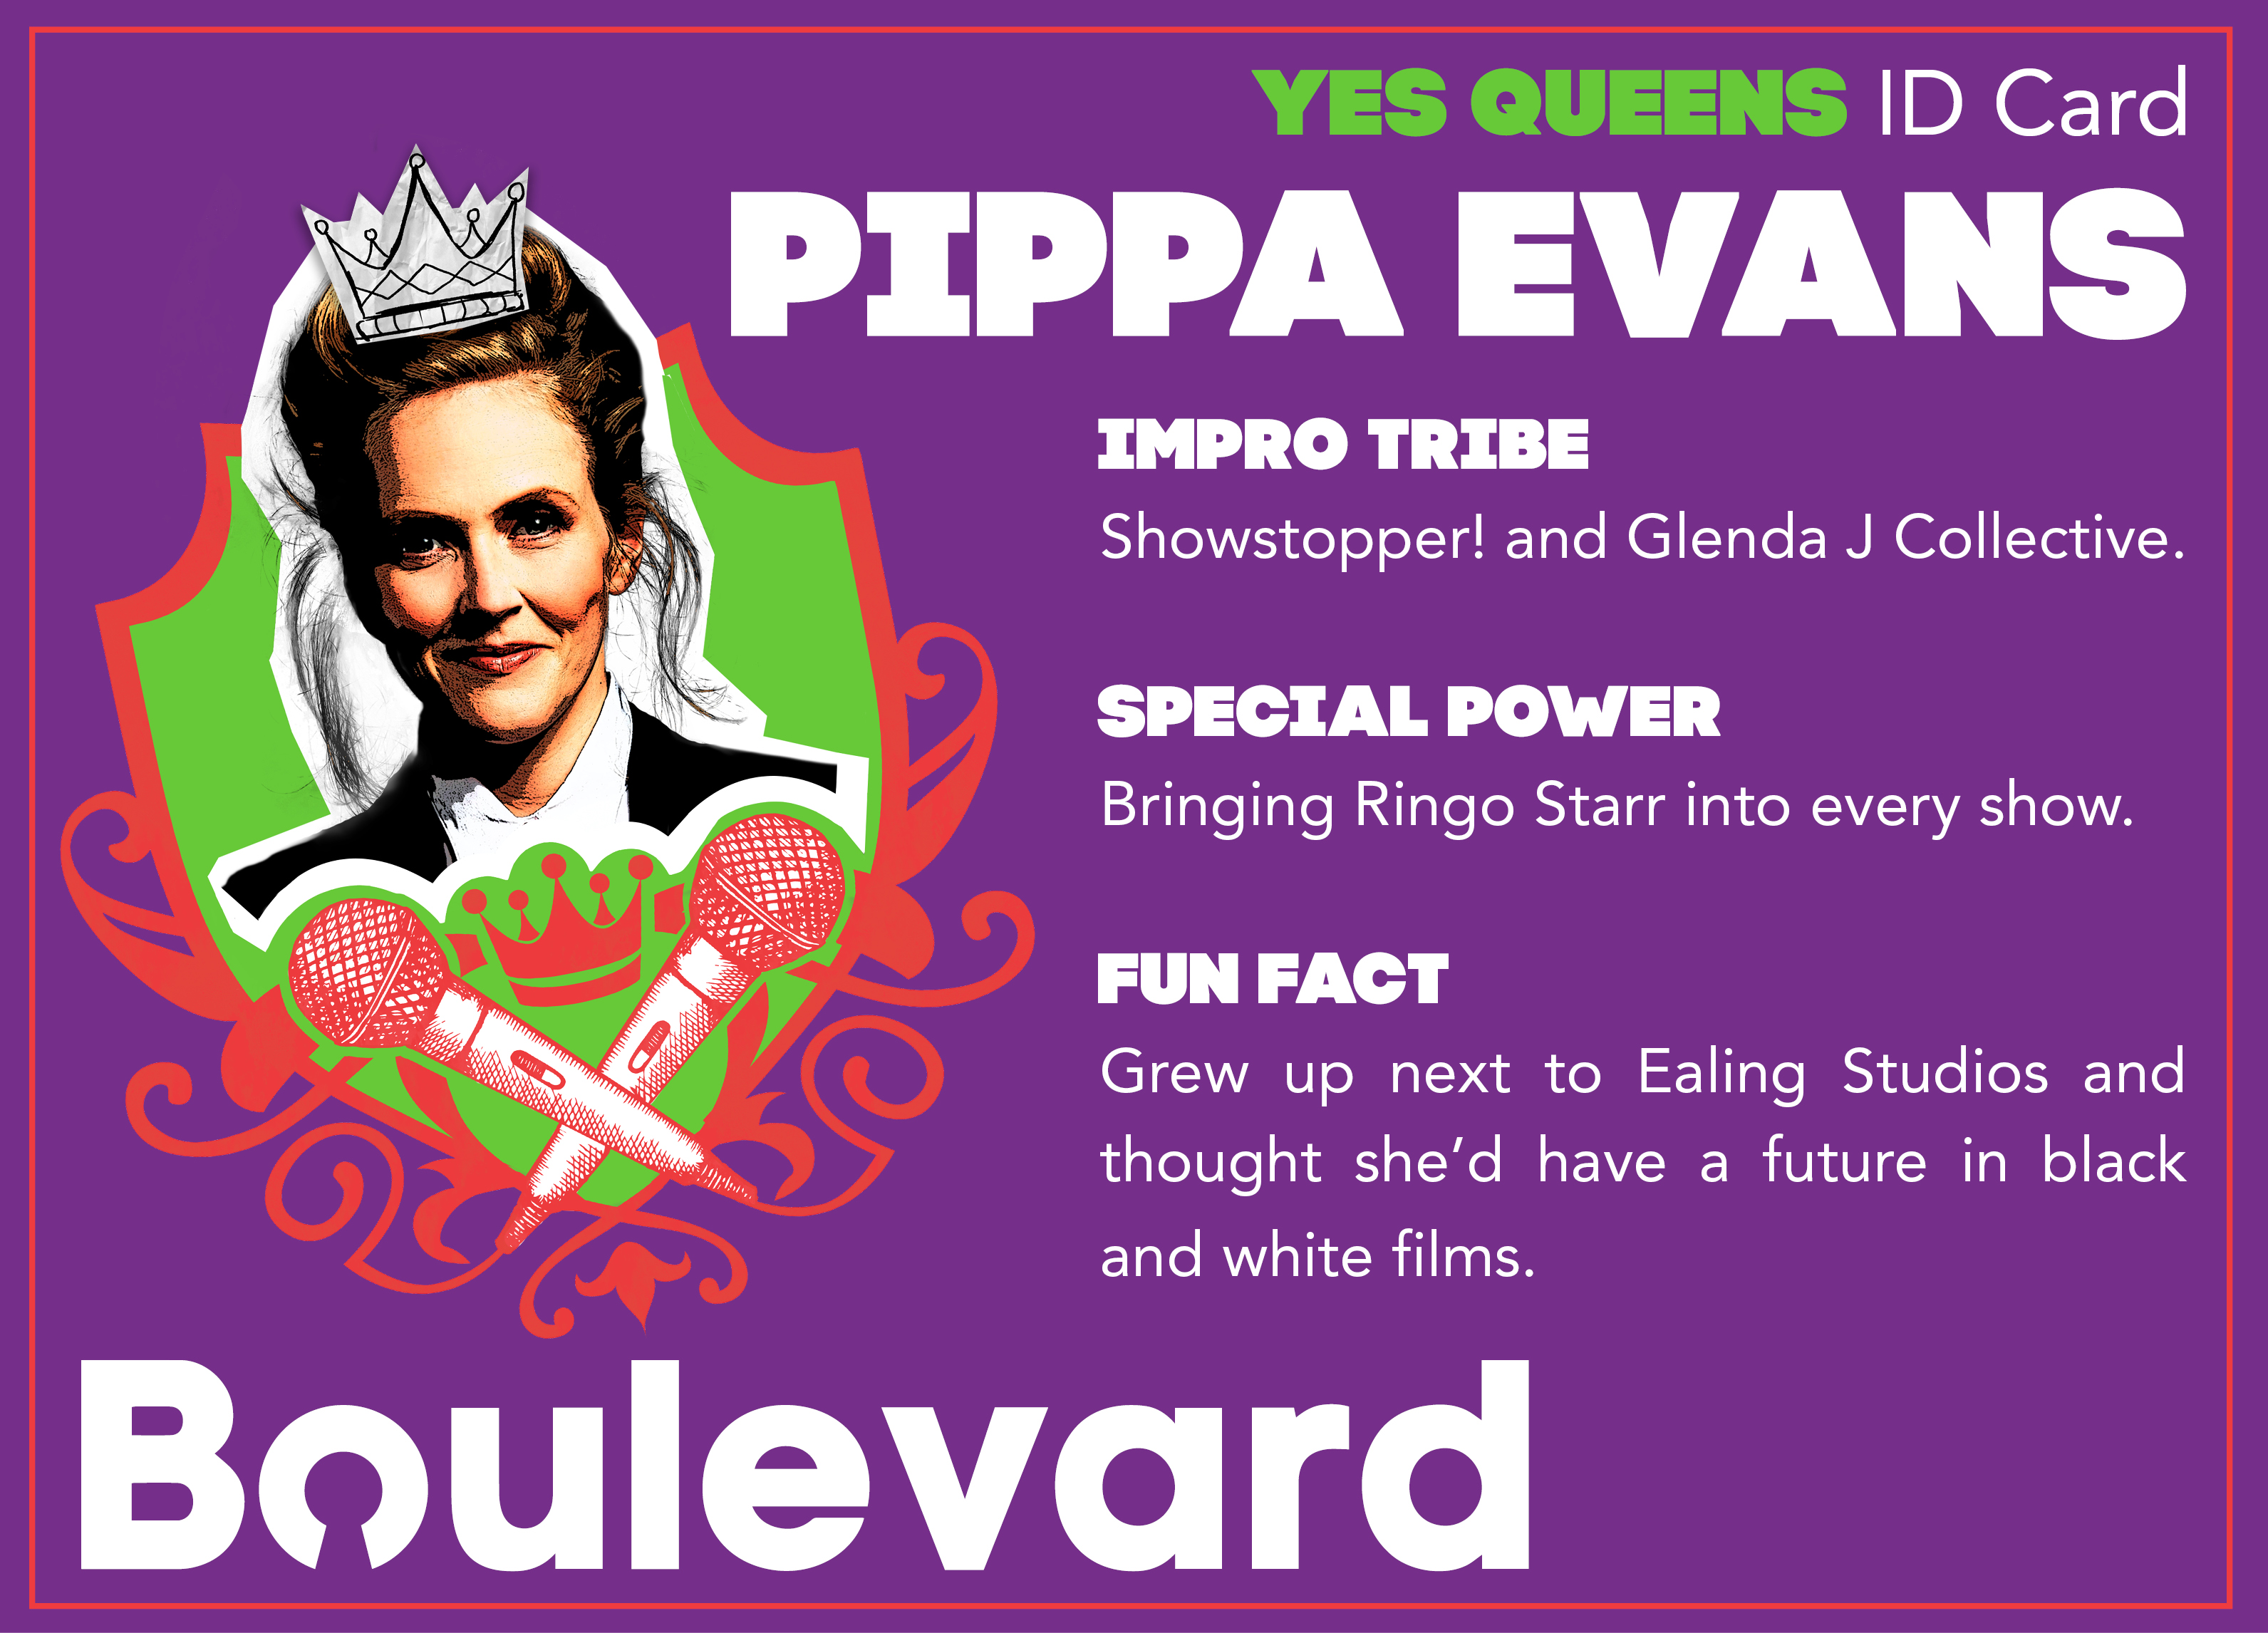 Yes Queens ID Card Pippa